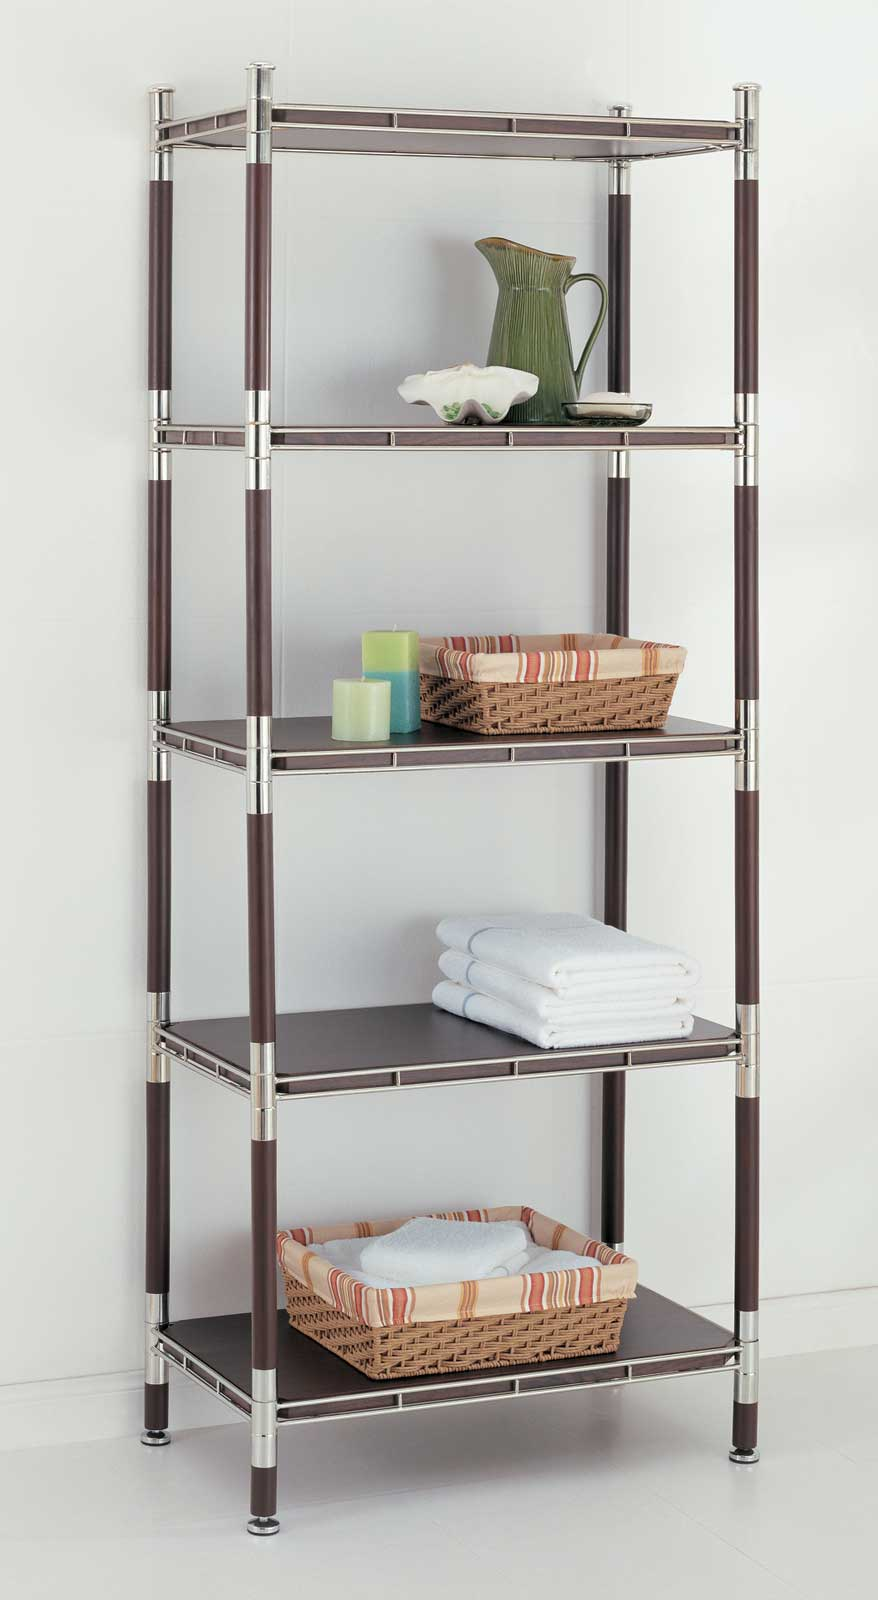 5 Tier Wood And Chrome Shelving Unit In Bathroom Shelves